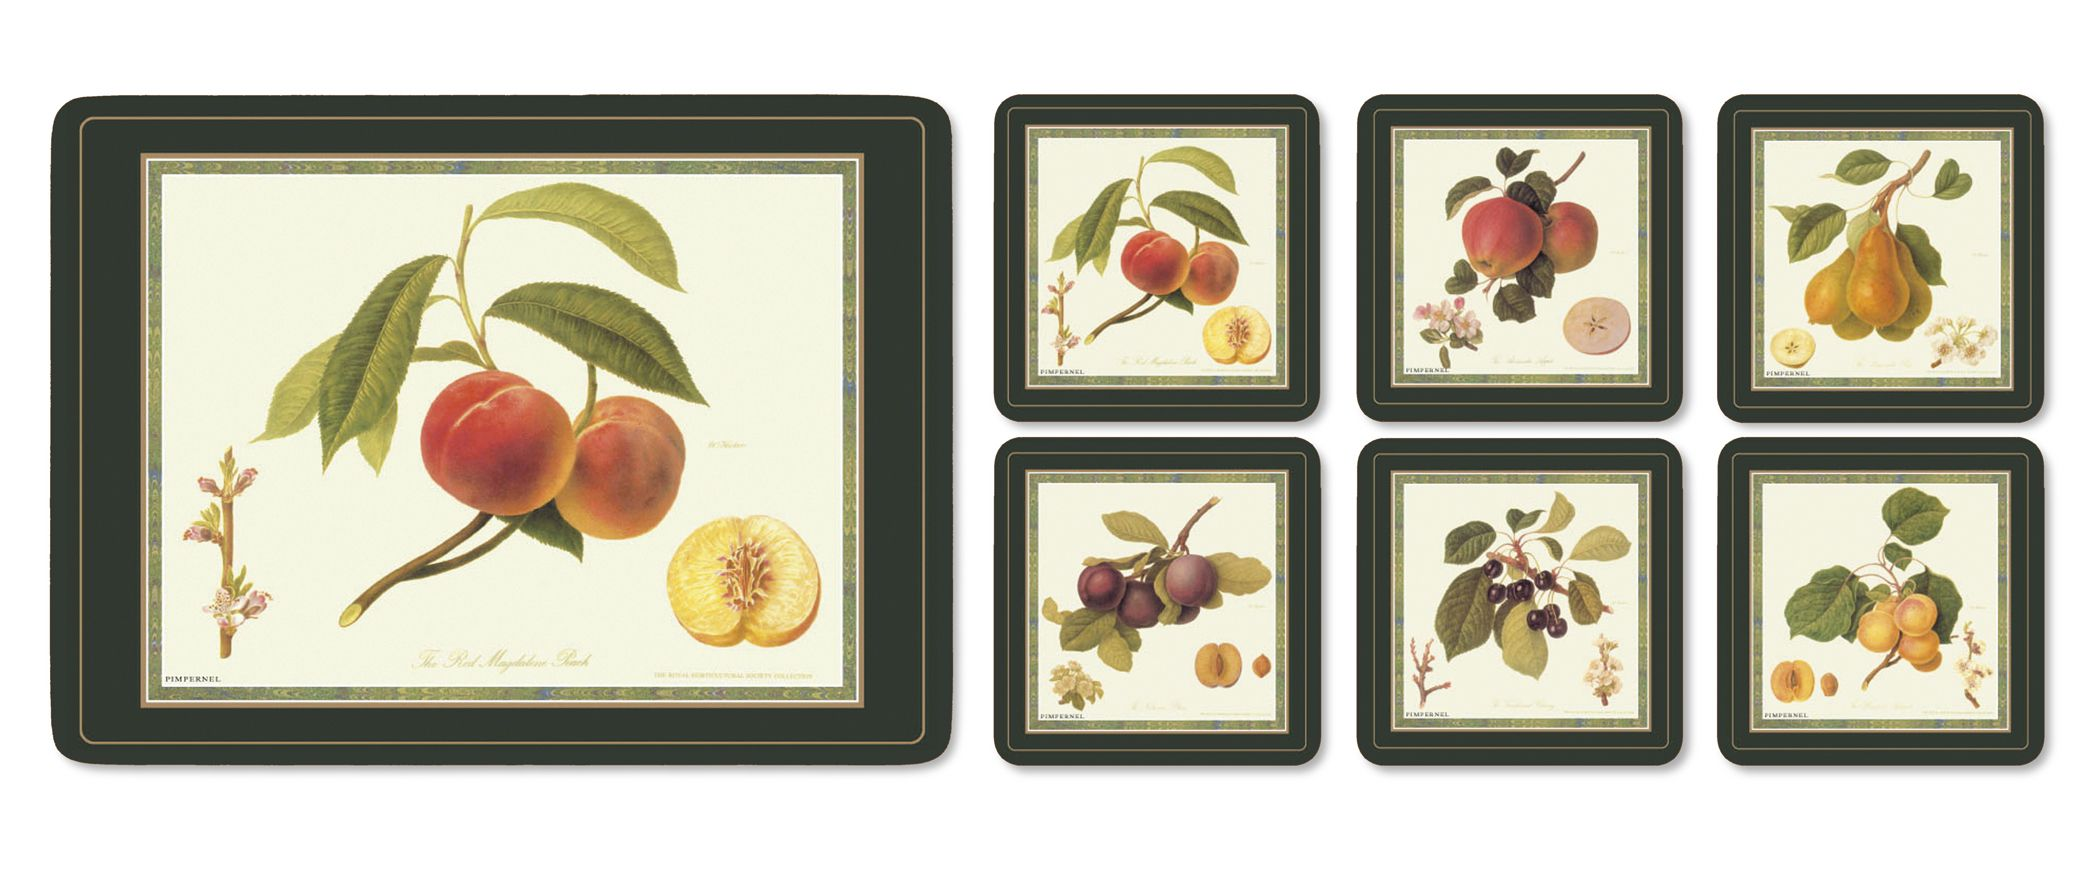 Hooker fruit tablemats